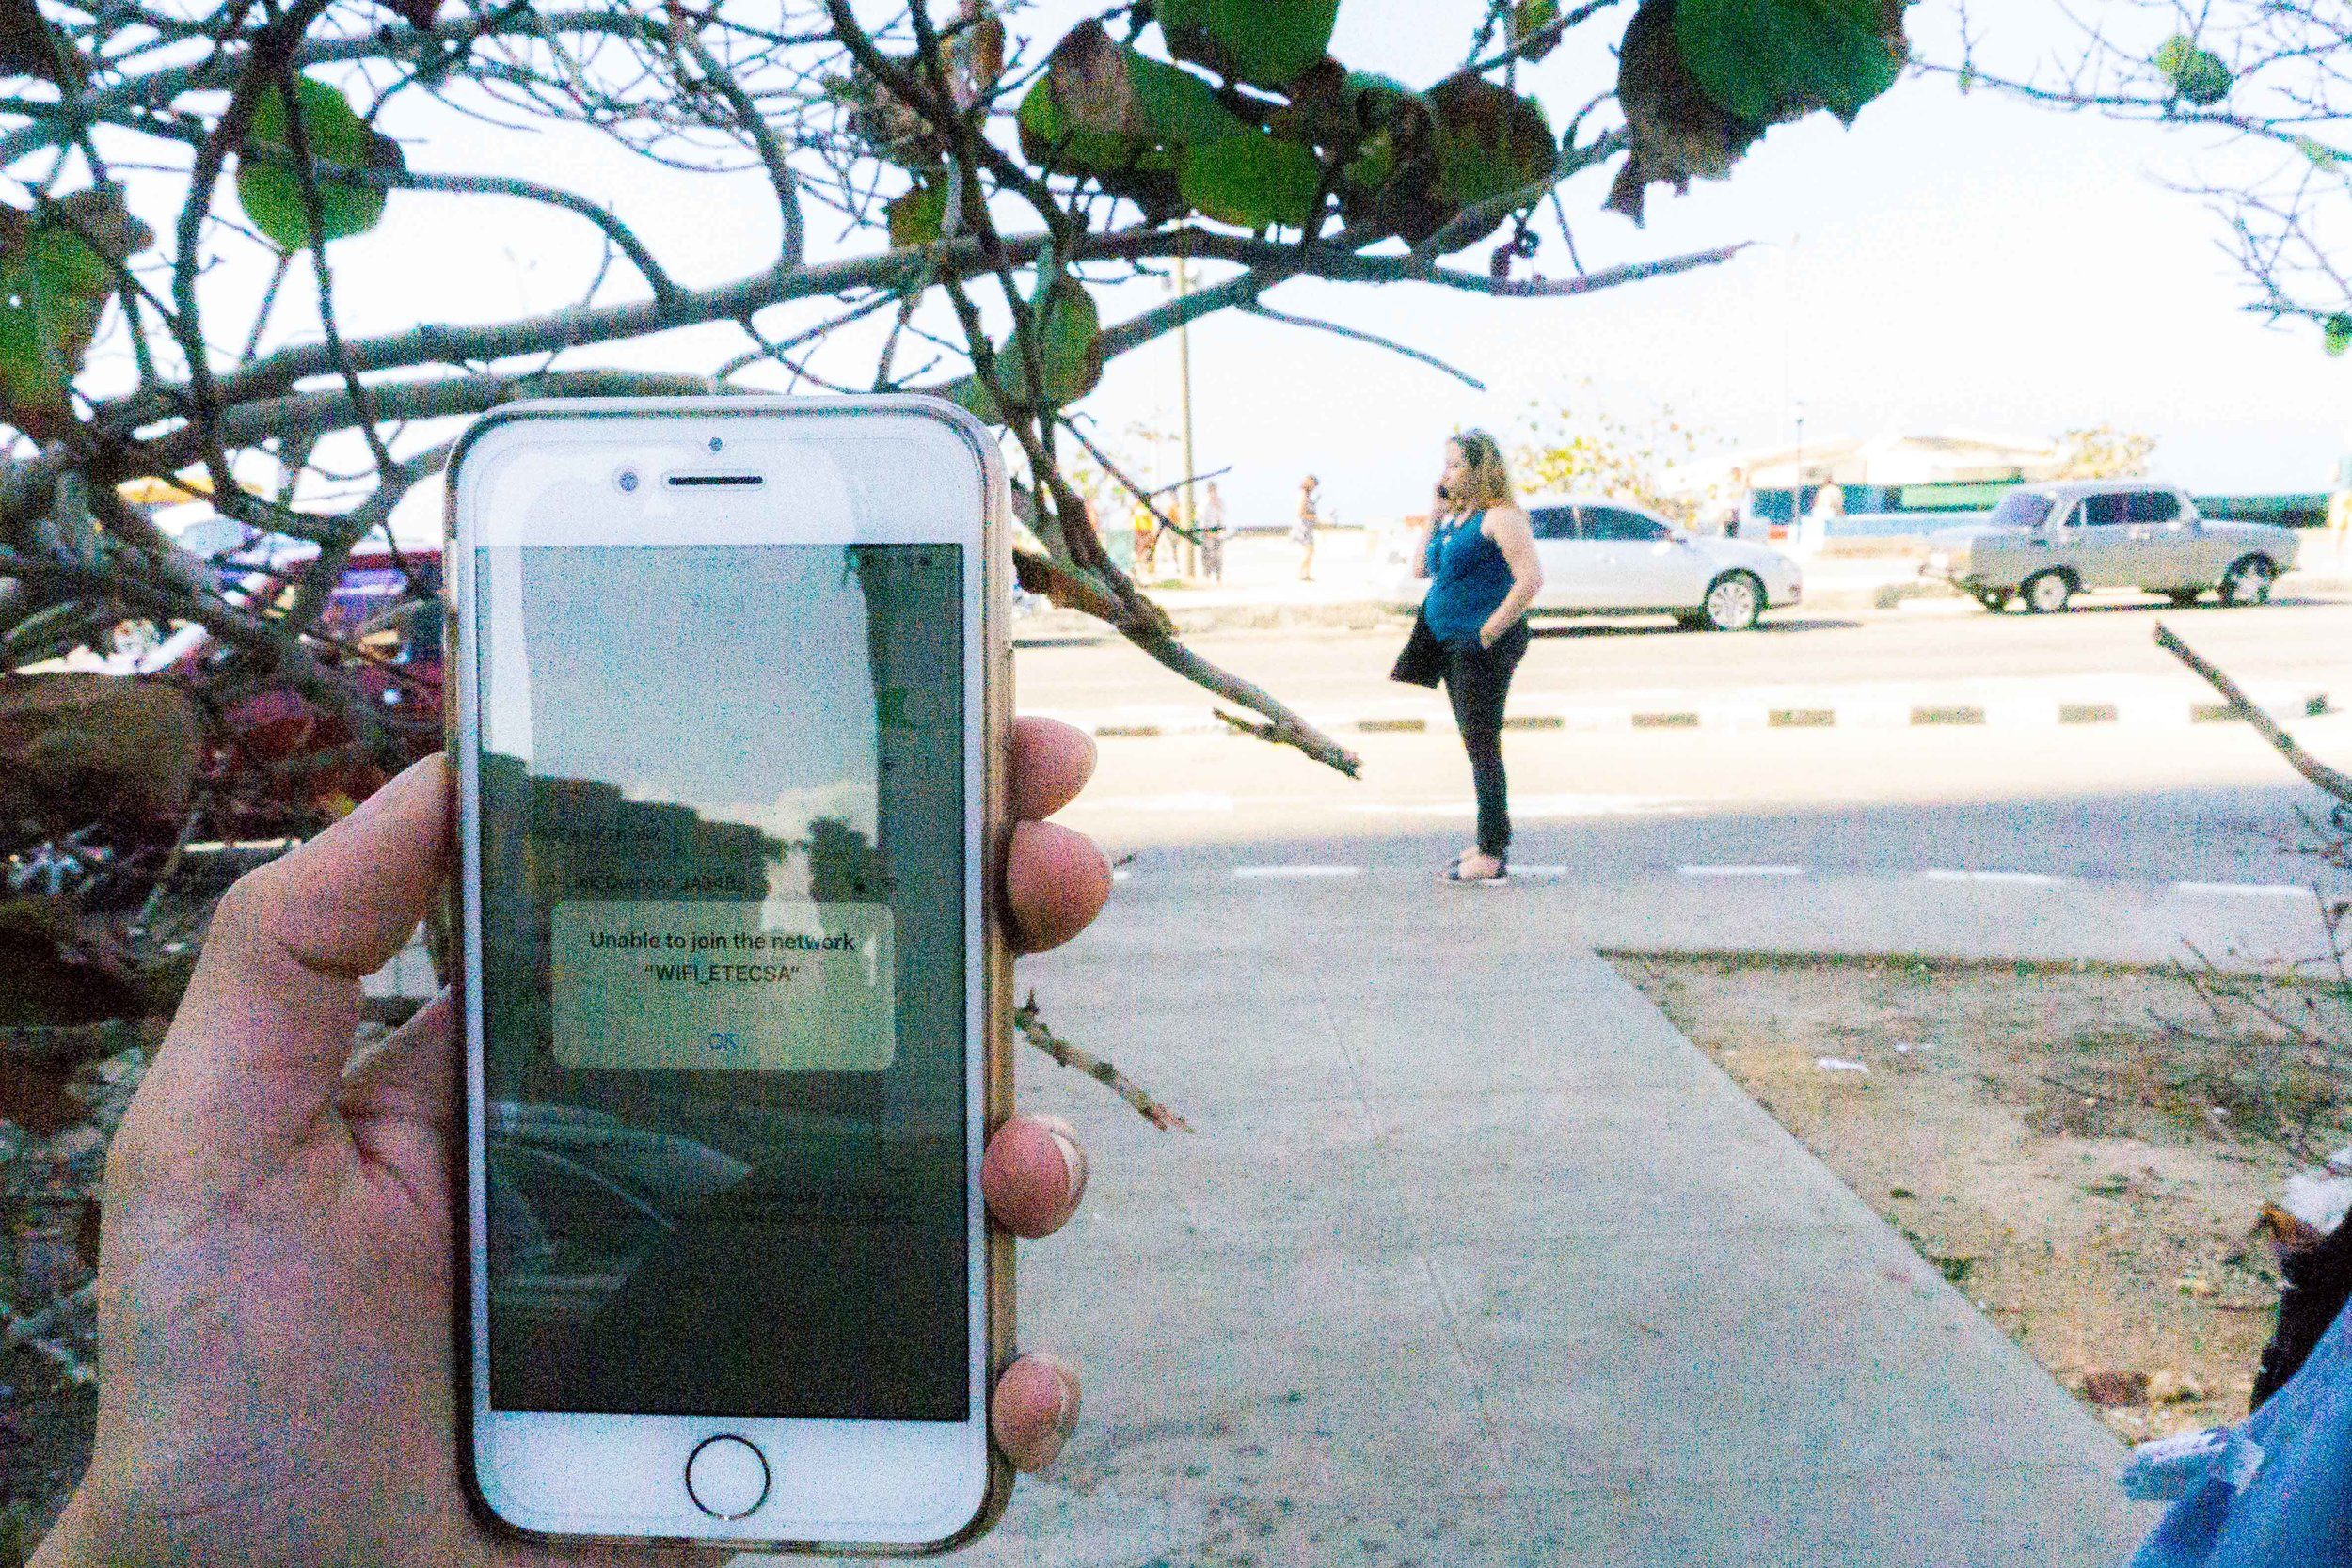 A shot of an iPhone trying to connect to the ETECSA wifi, at a government-approved internet park. When the public wifi works, Havana residents can catch up on news of friends and the world. But the connection can be finicky. (Vangmayi Parakala/MEDILL)